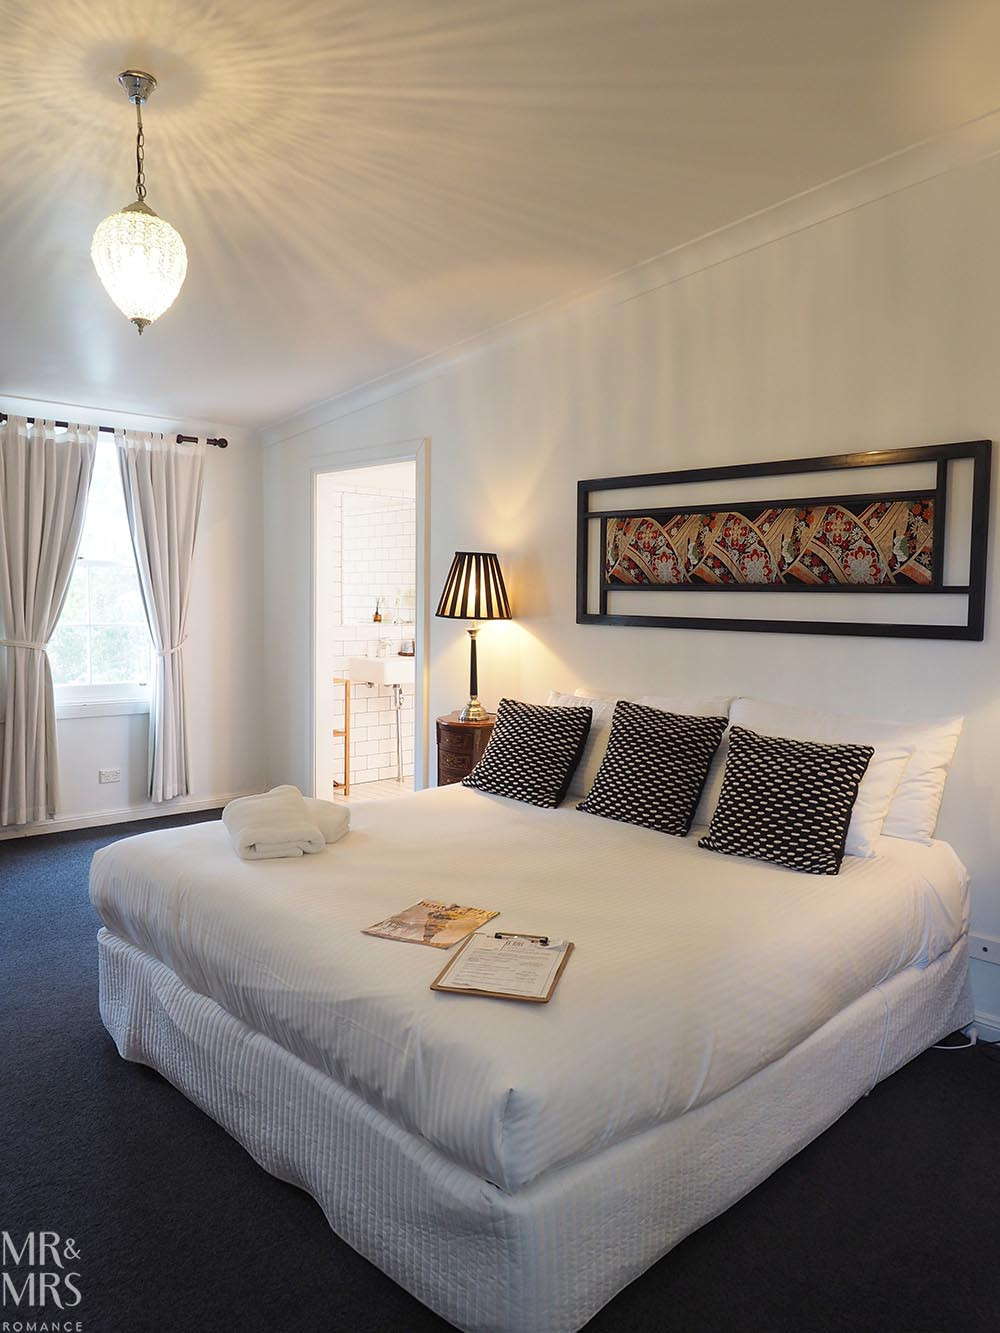 Where to stay in the Hunter Region, NSW - The Bronte Boutique Hotel, Morpeth - bedroom